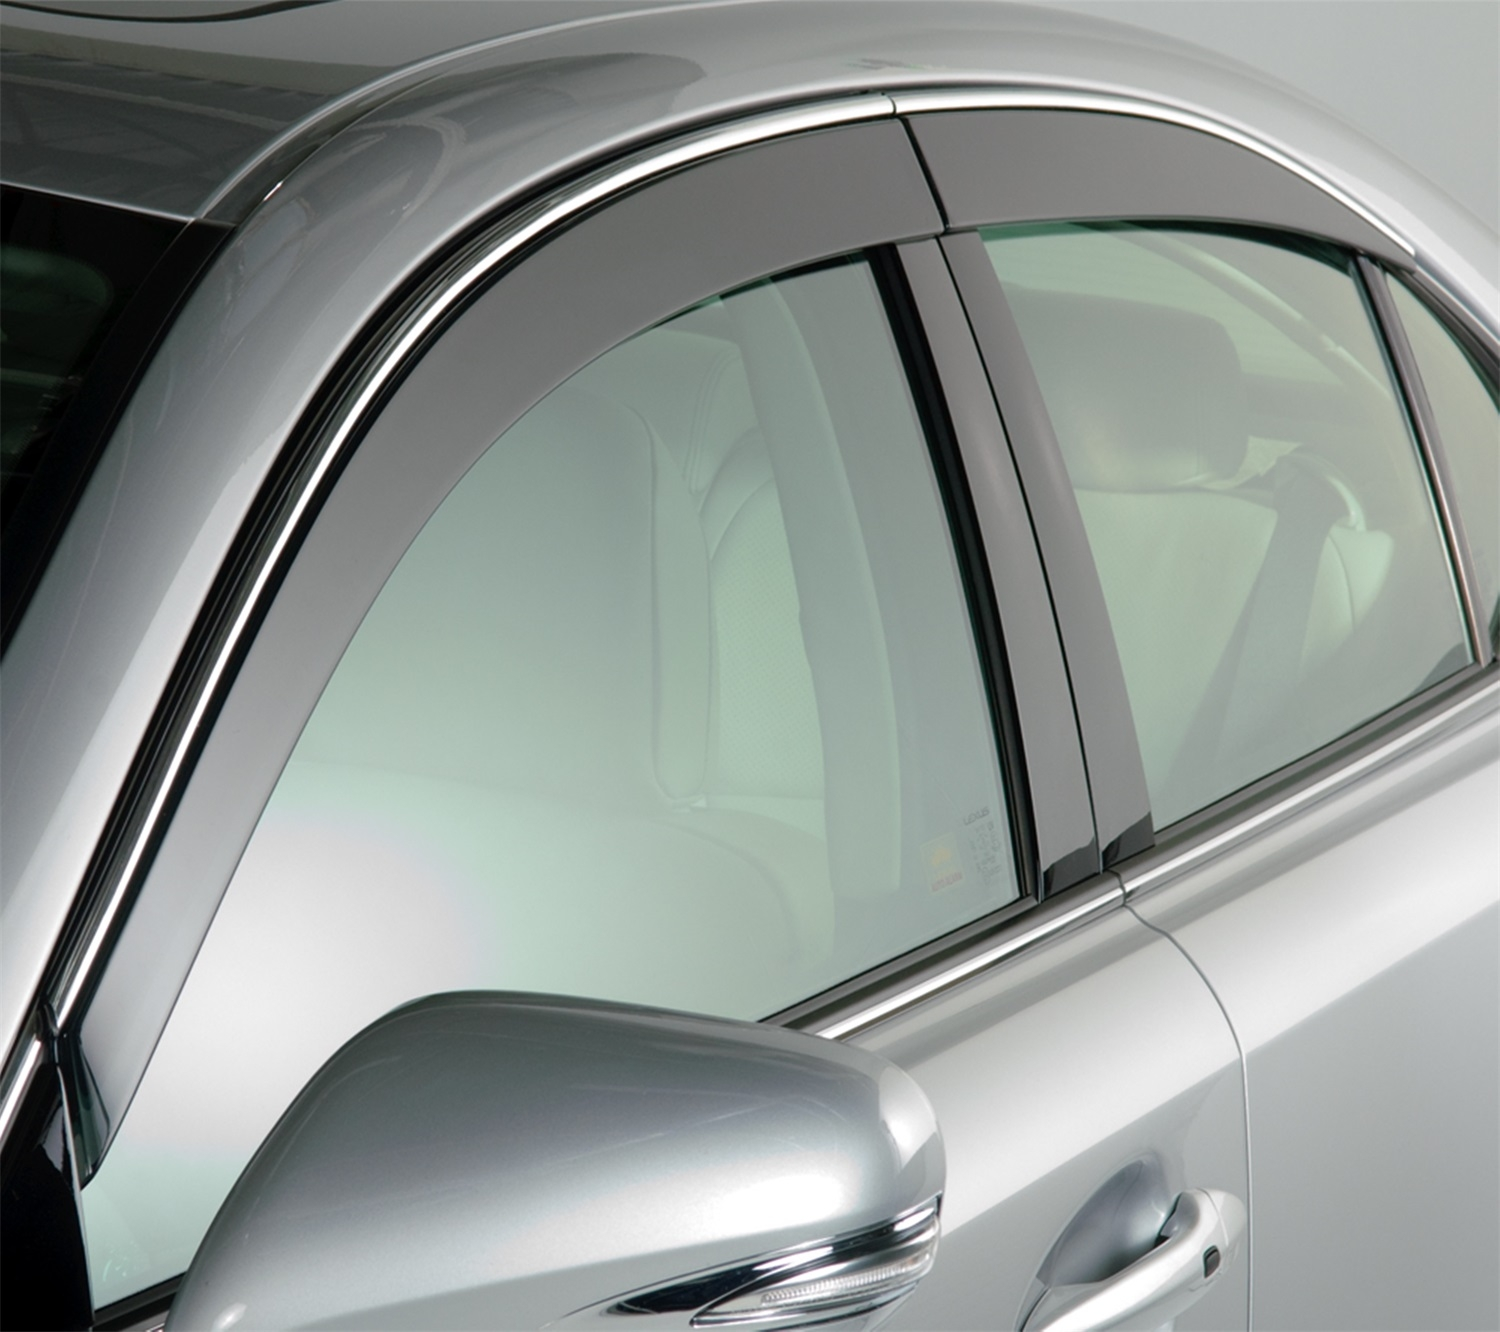 Avs Seamless Vent Visors Low Profile Window Deflectors